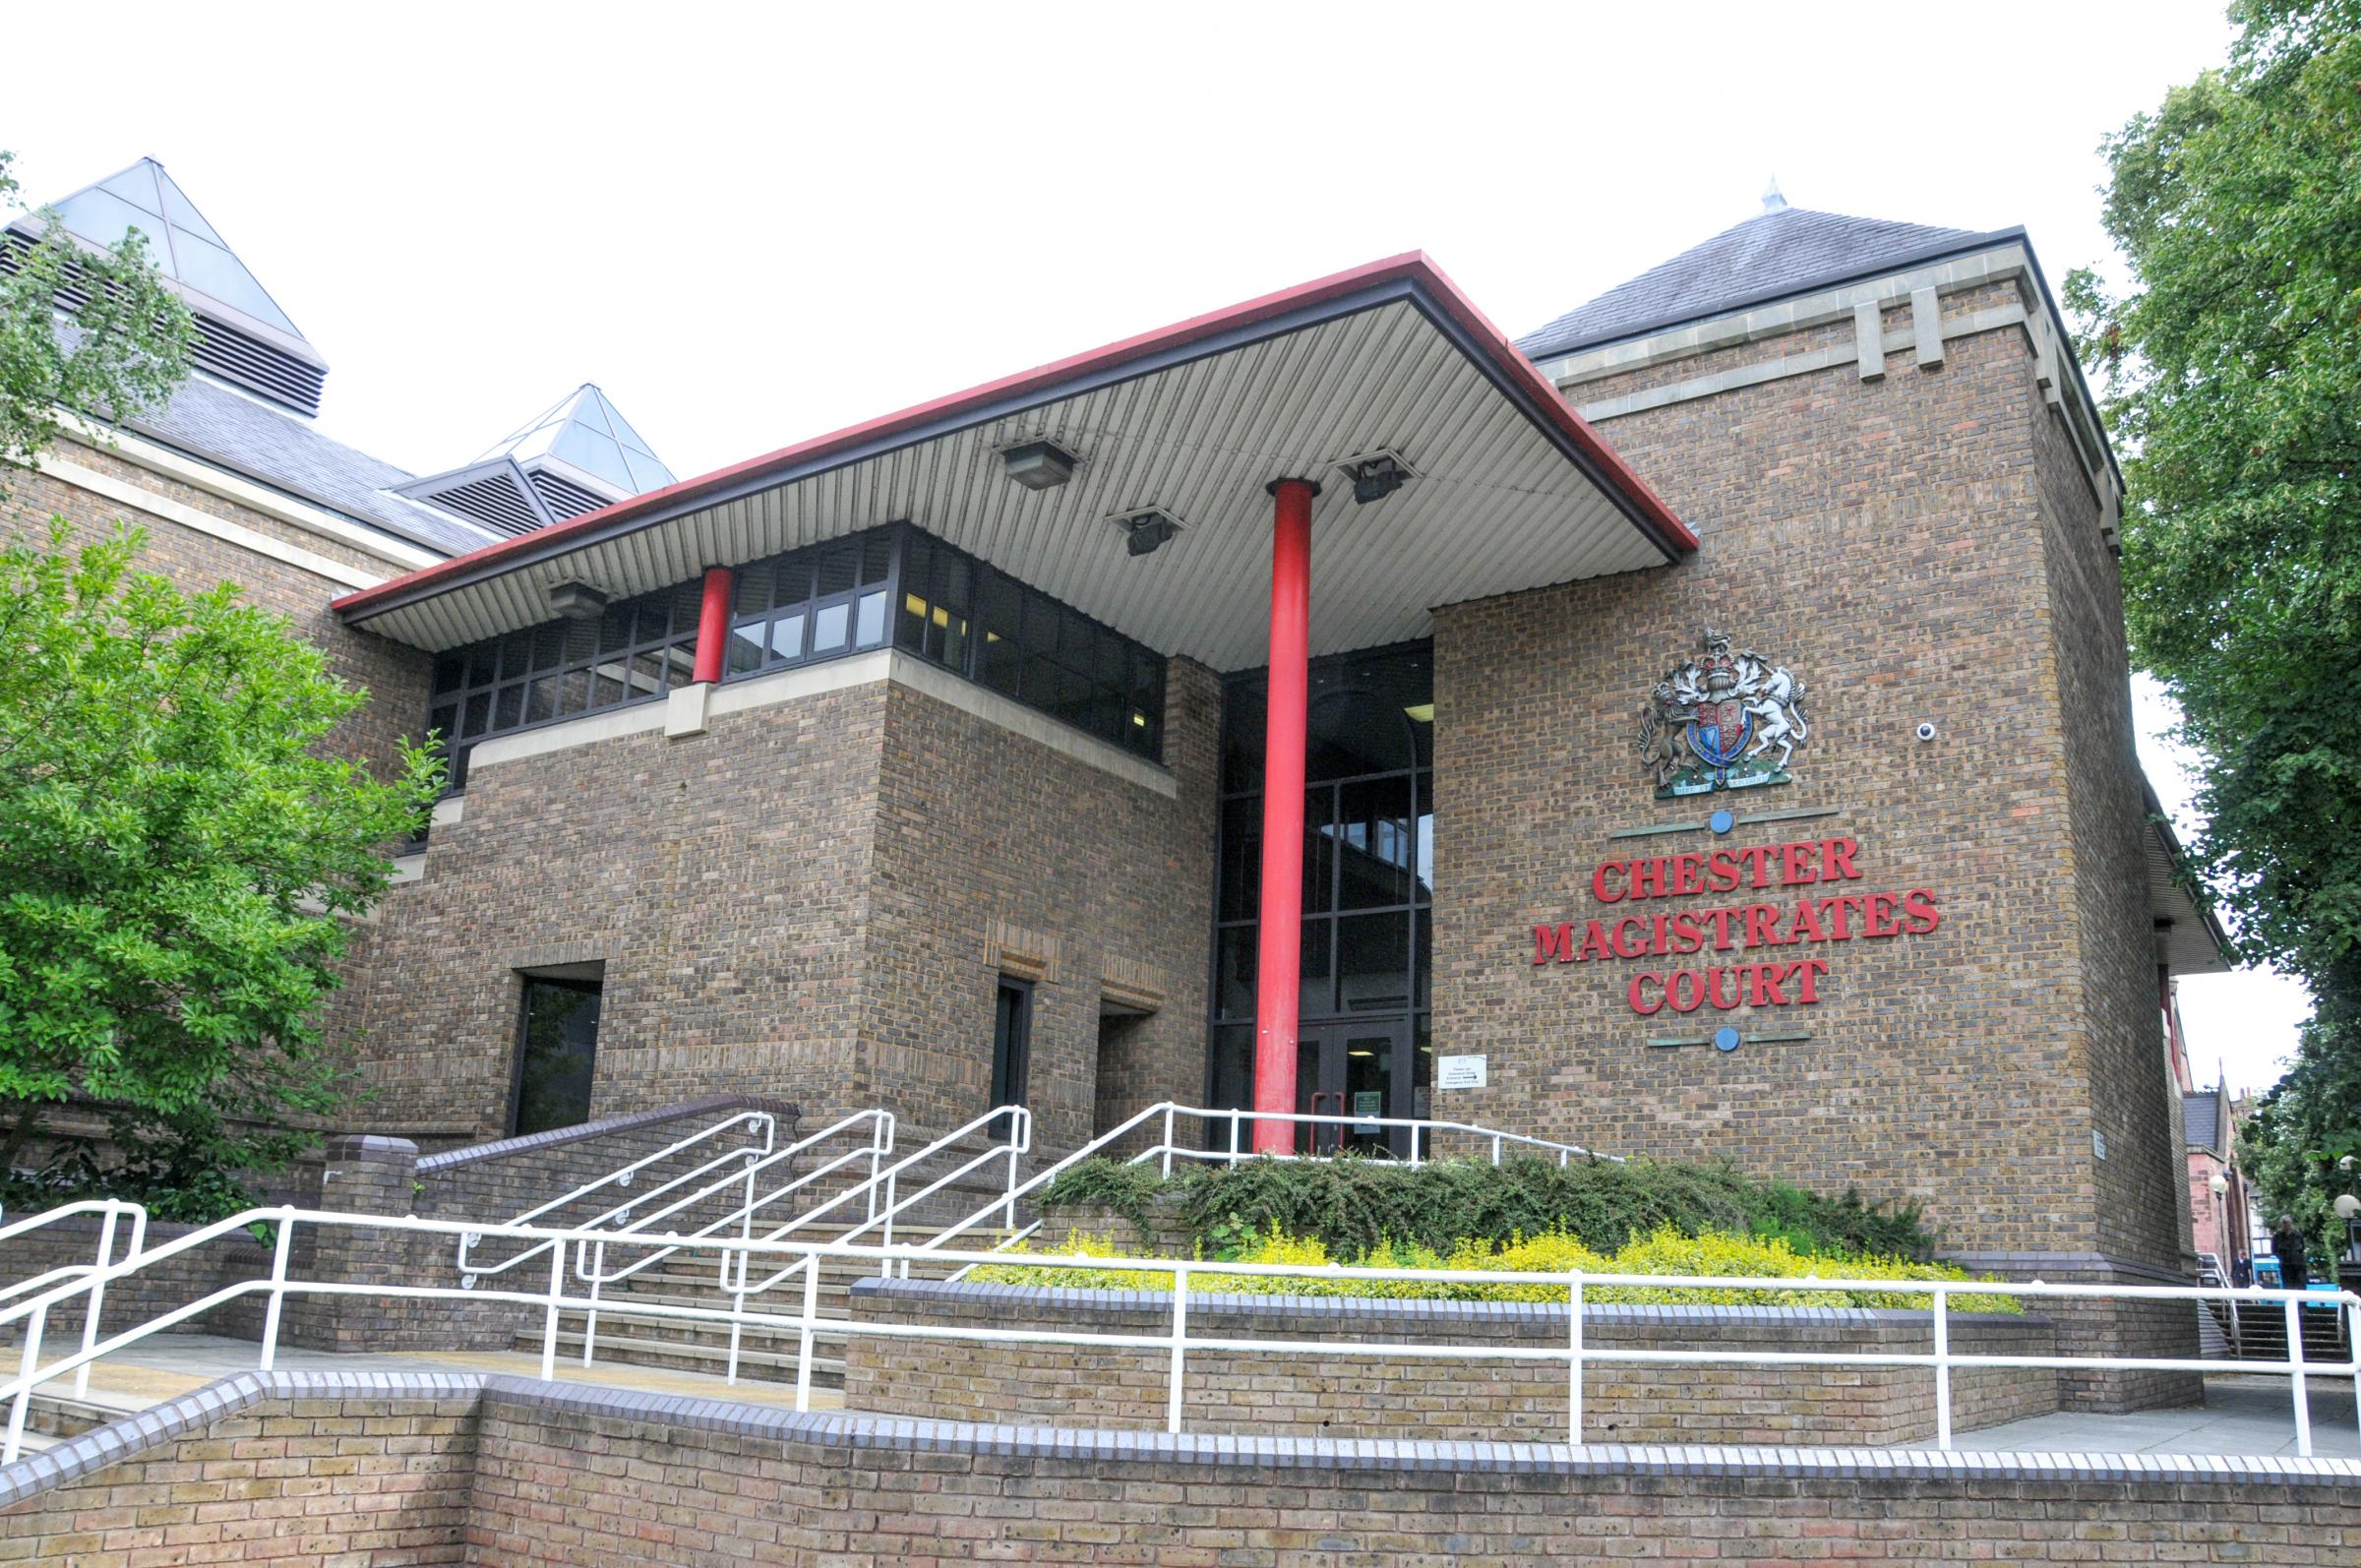 Cheshire West and Chester Council social worker from Wrexham stole more than £90k from her elderly vulnerable victims